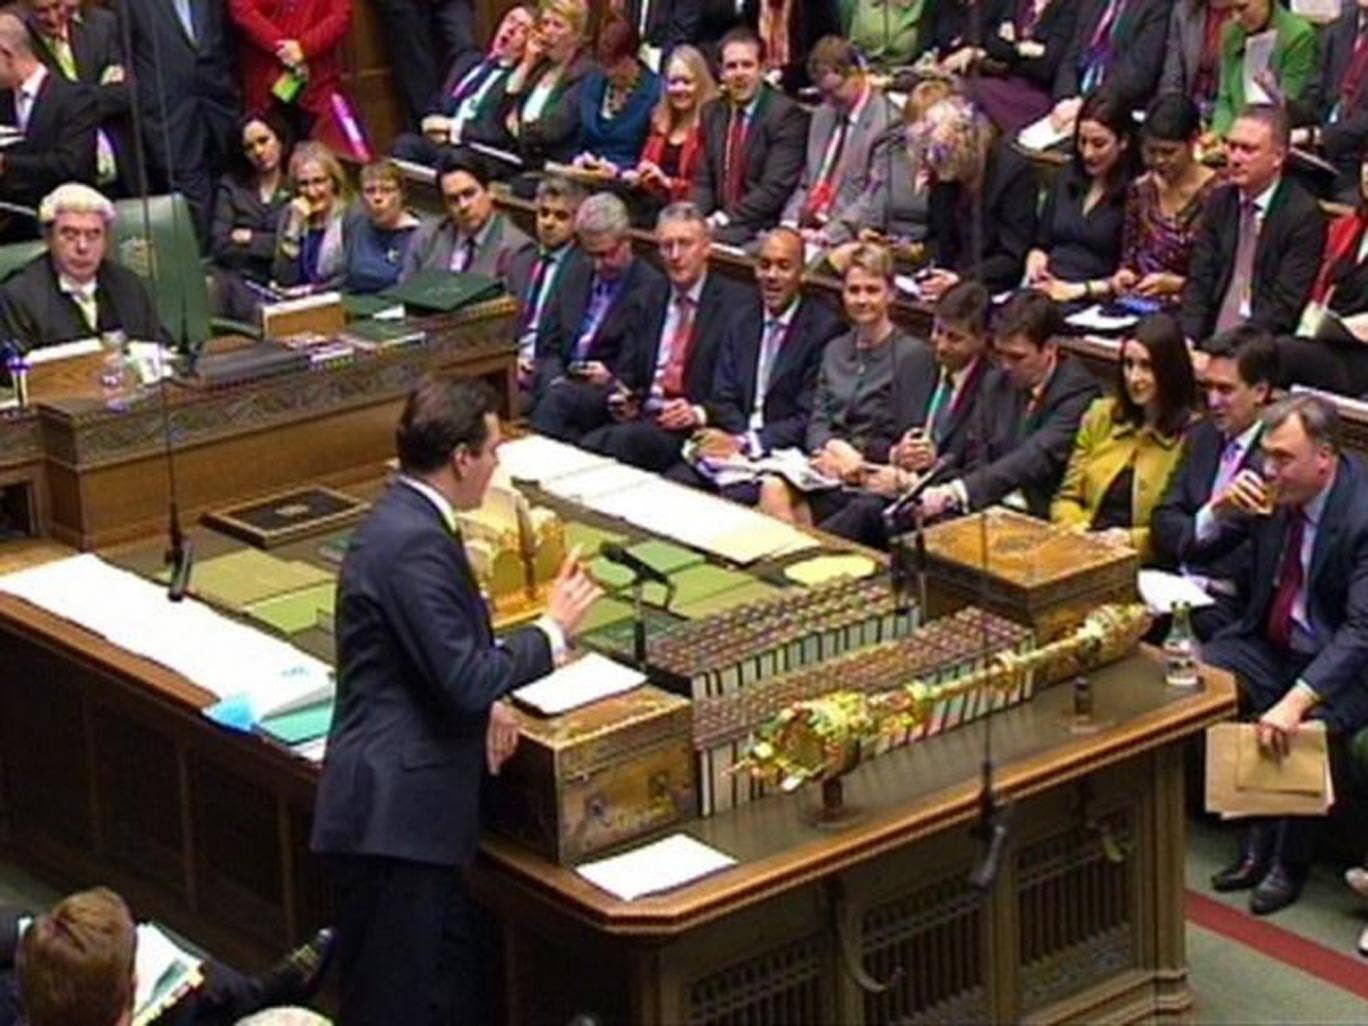 Chancellor of the Exchequer Georger Osborne delivers his Autumn Statement to MPs in the House of Commons